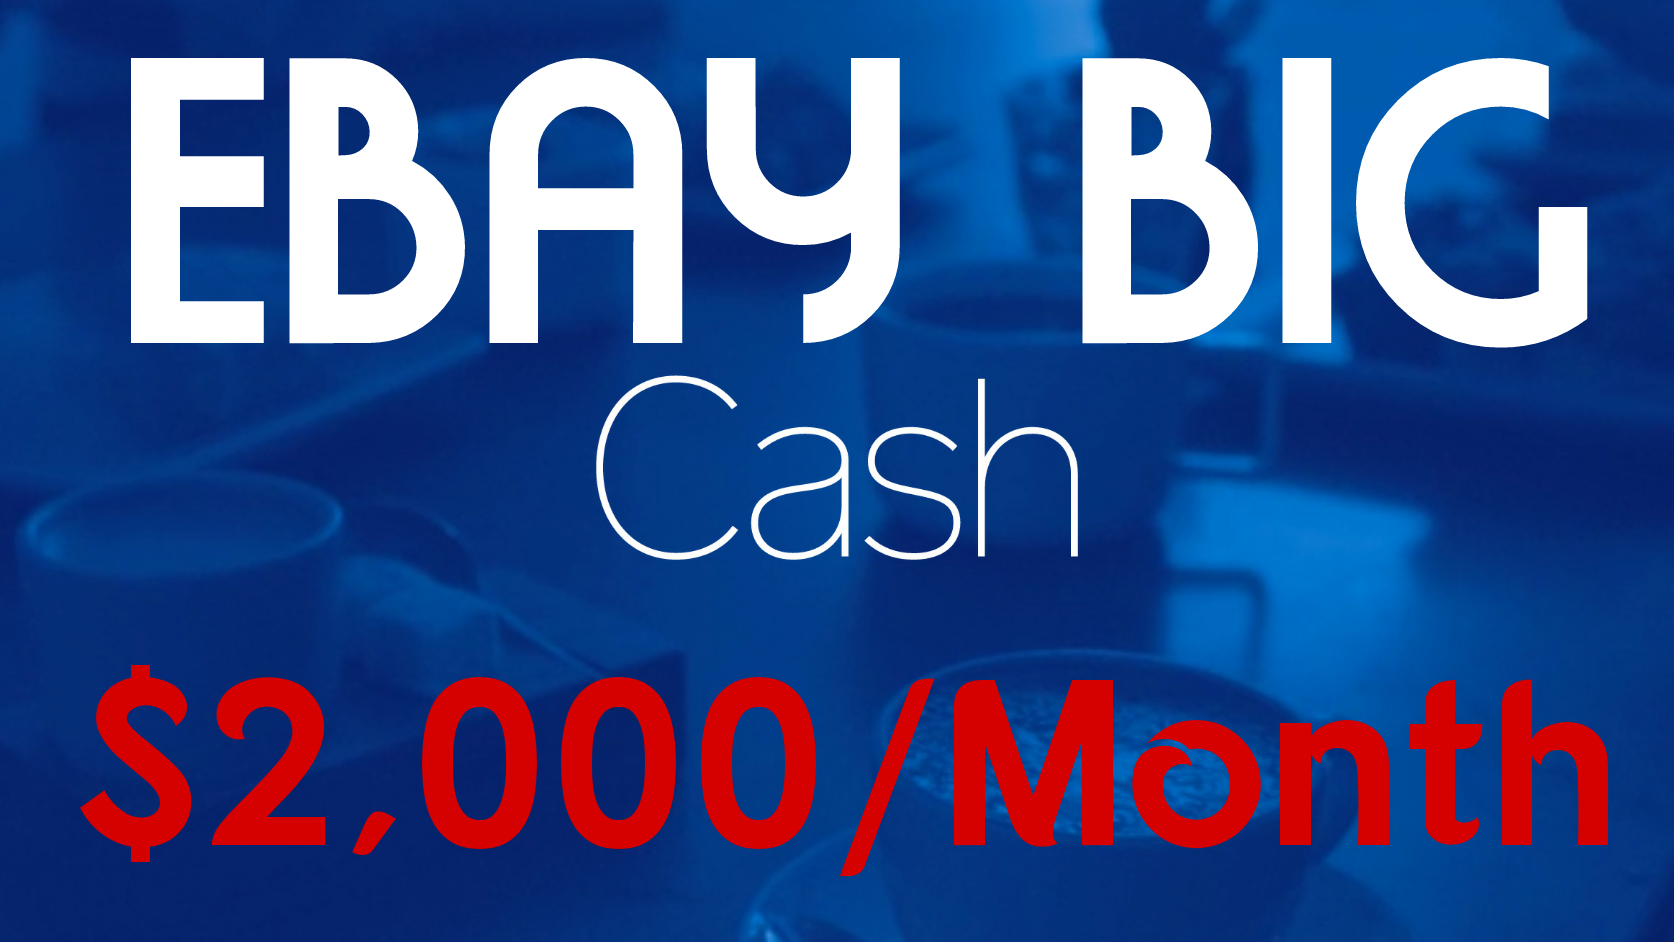 Give You My Secret to Making $2000 every Month on eBay